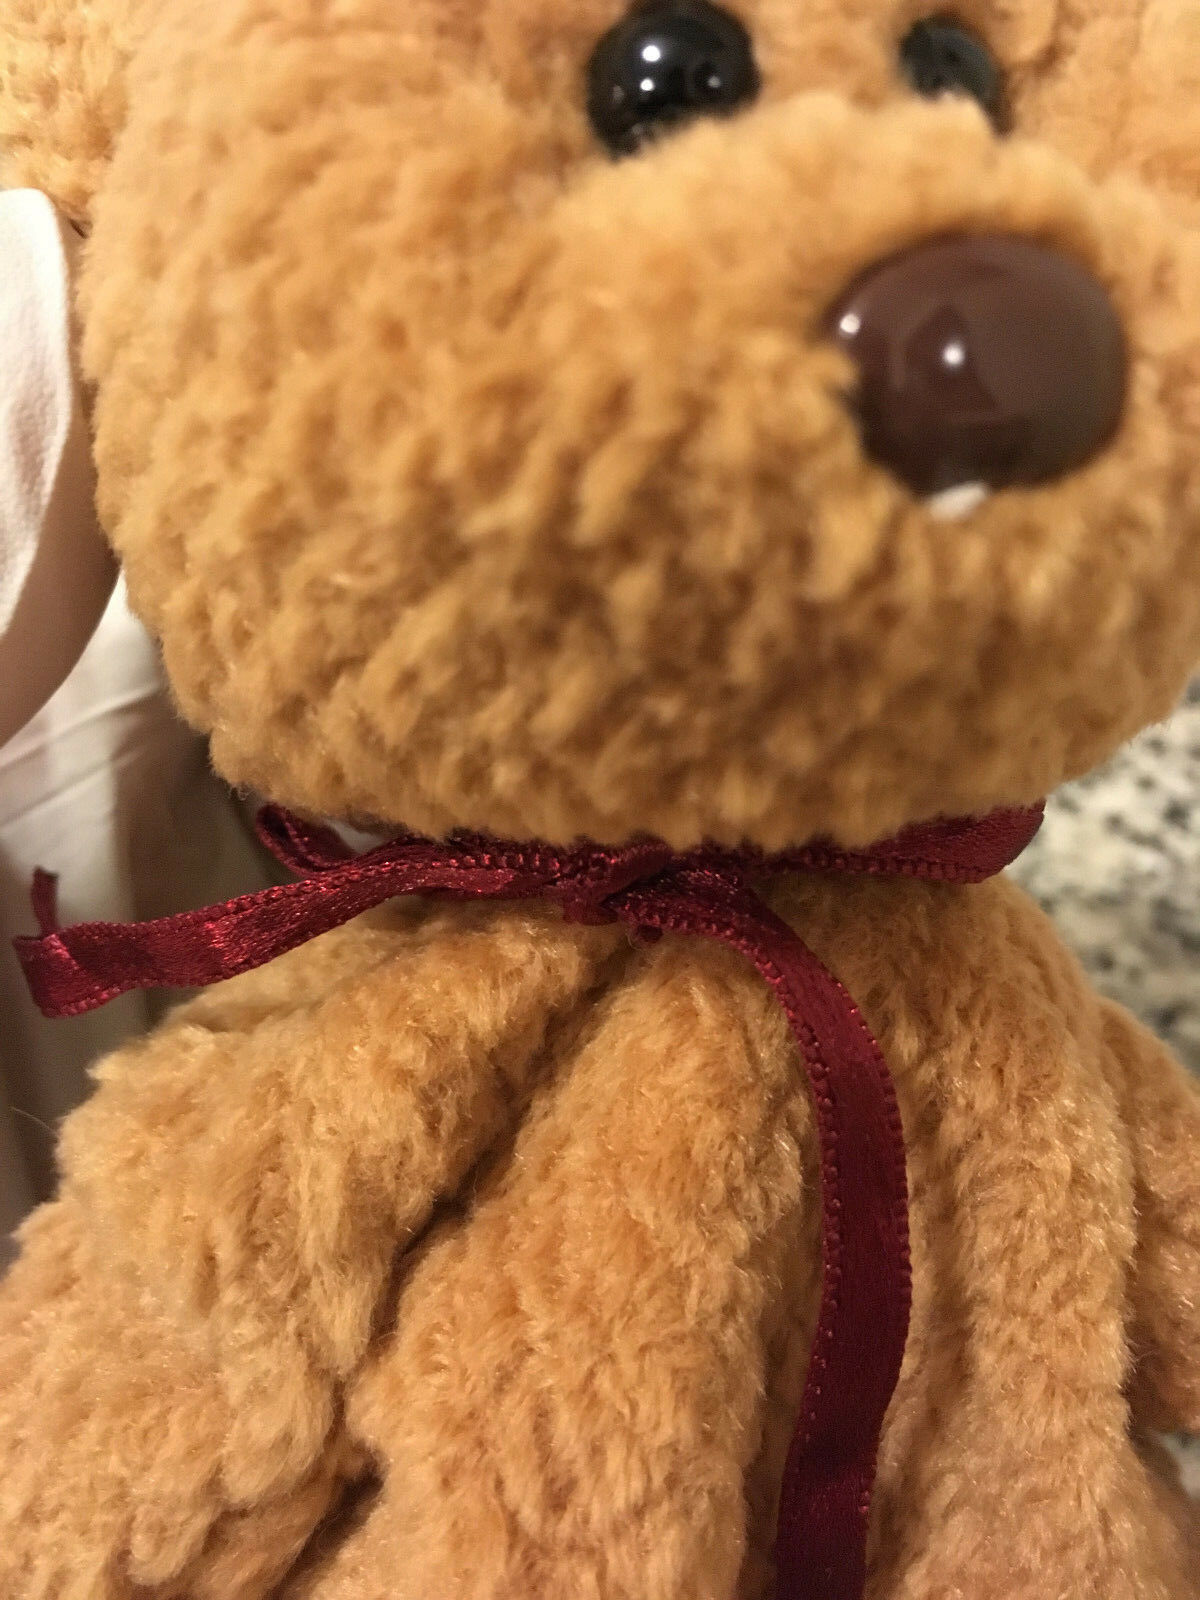 Rare Curly Curly Curly Beanie Baby Multiple Errors f10462